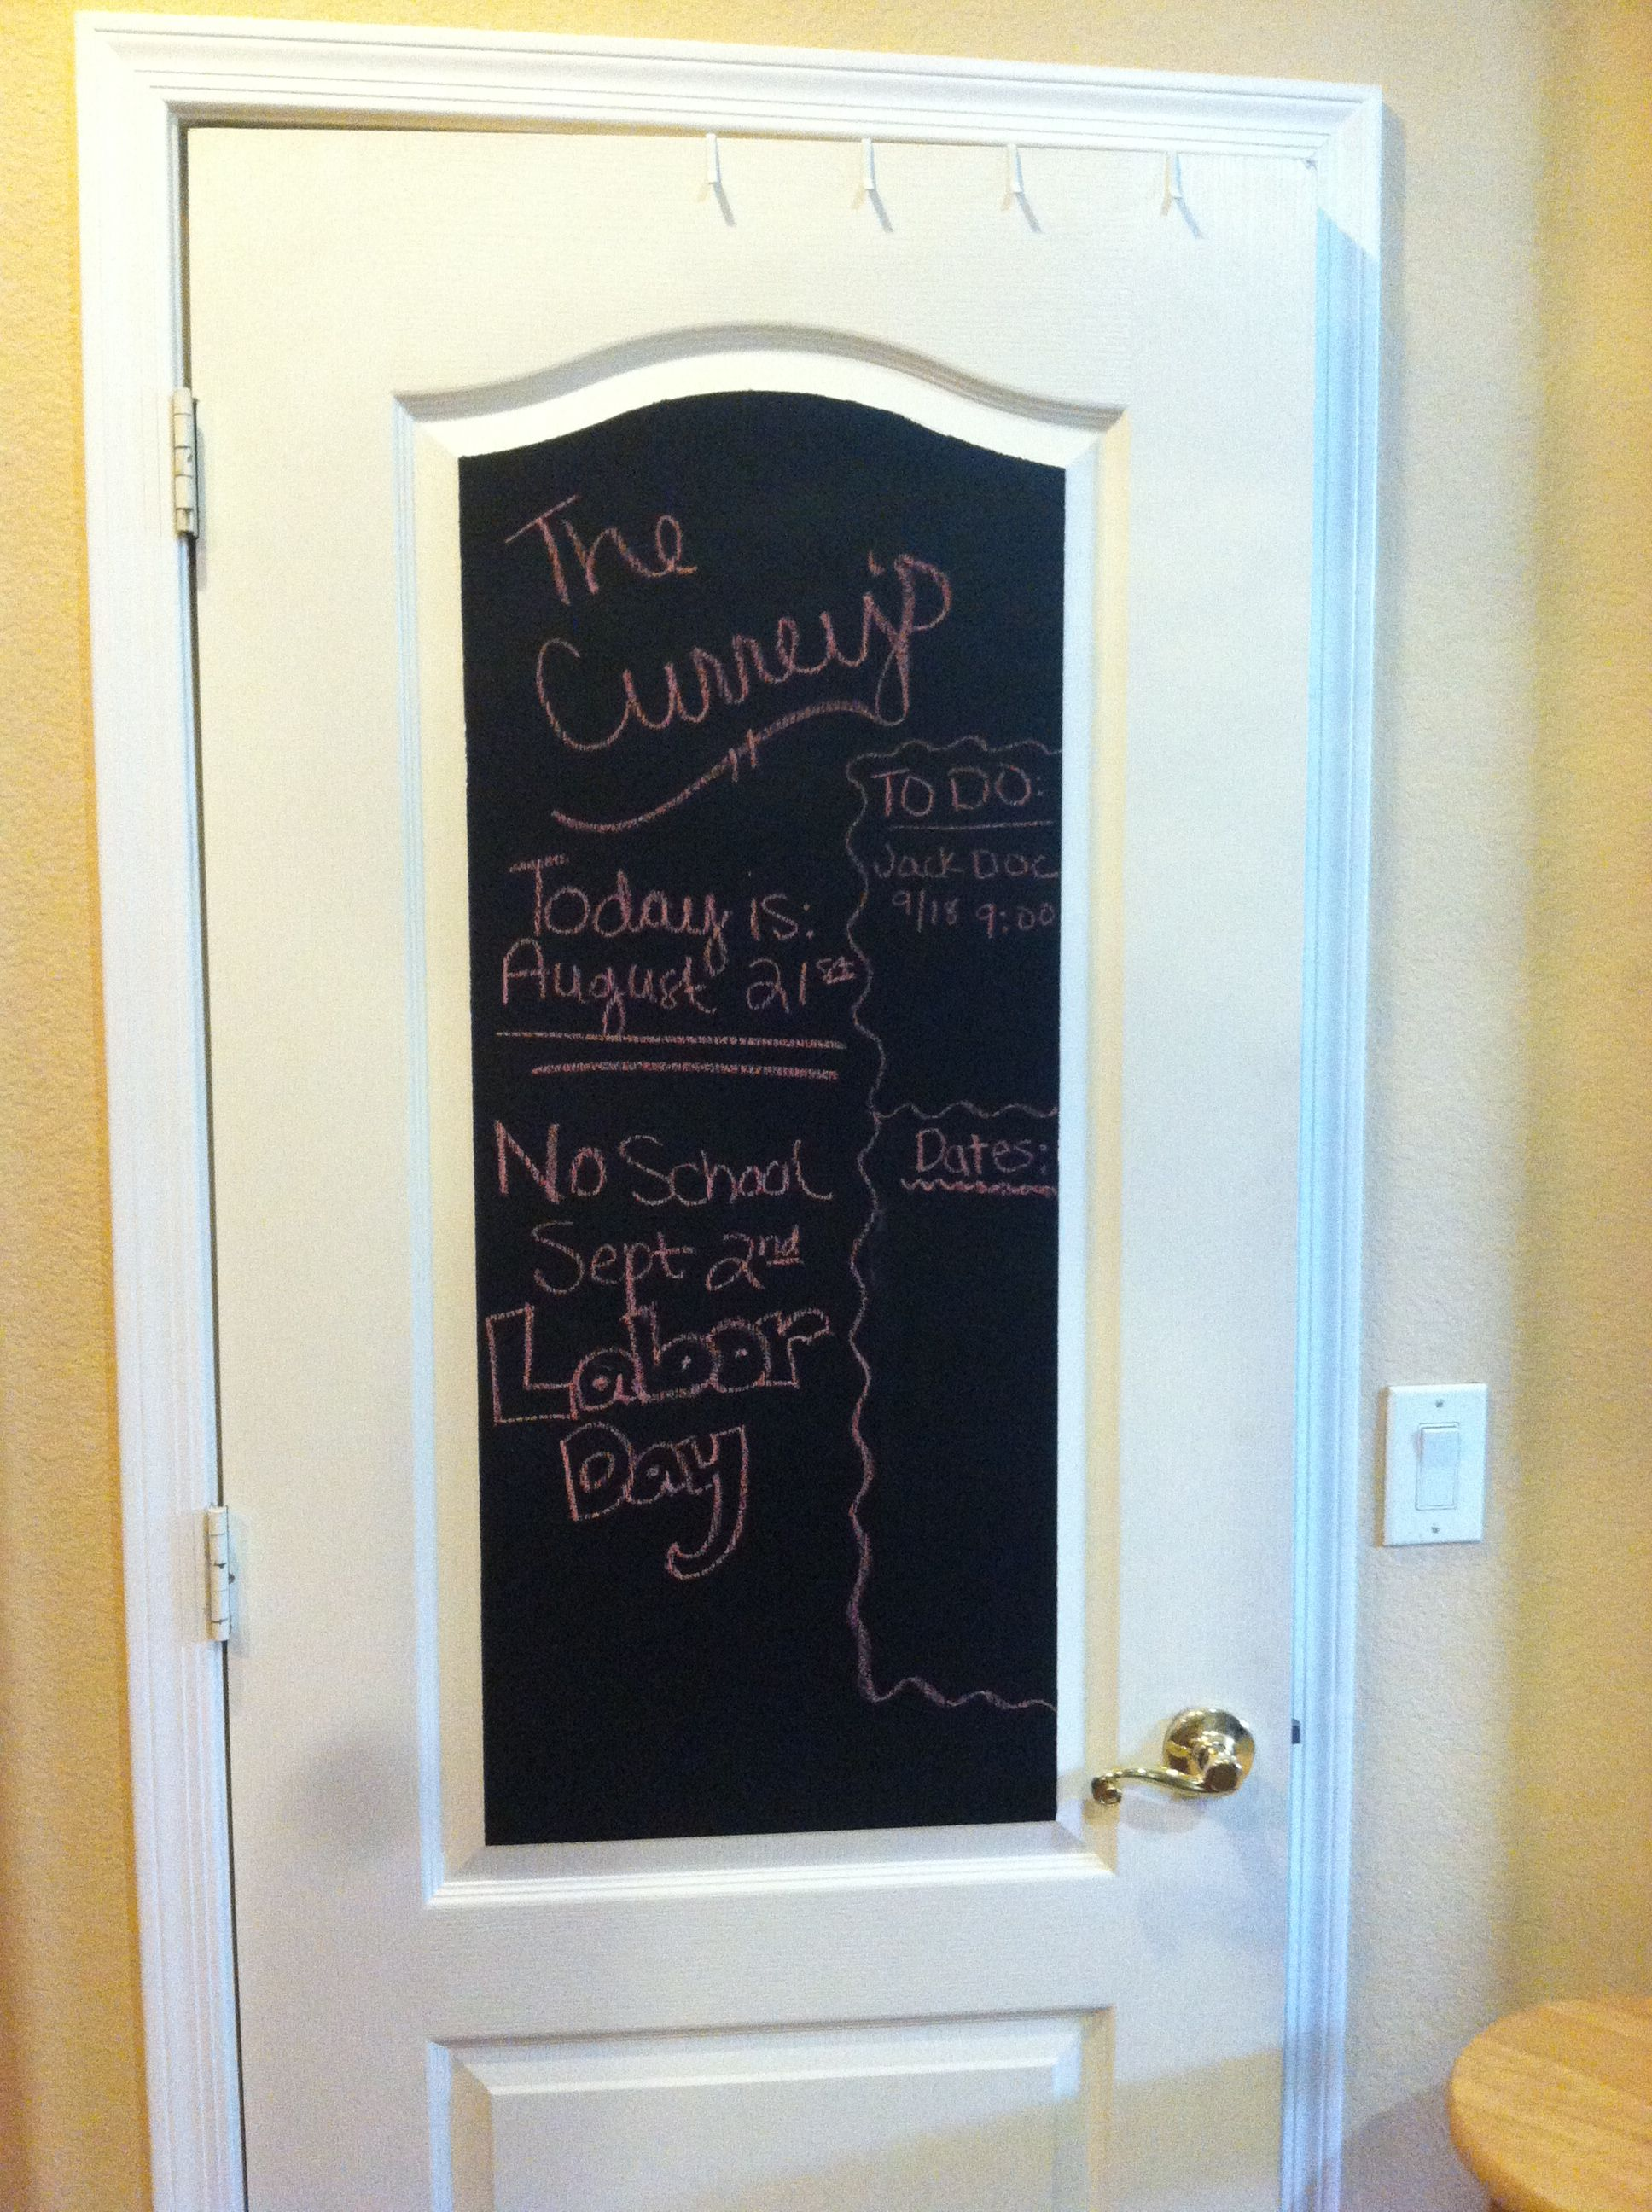 Super easy to do! Chalkboard paint on kitchen door =] I used Valspar brand paint and did 3 coats after sanding down the door.